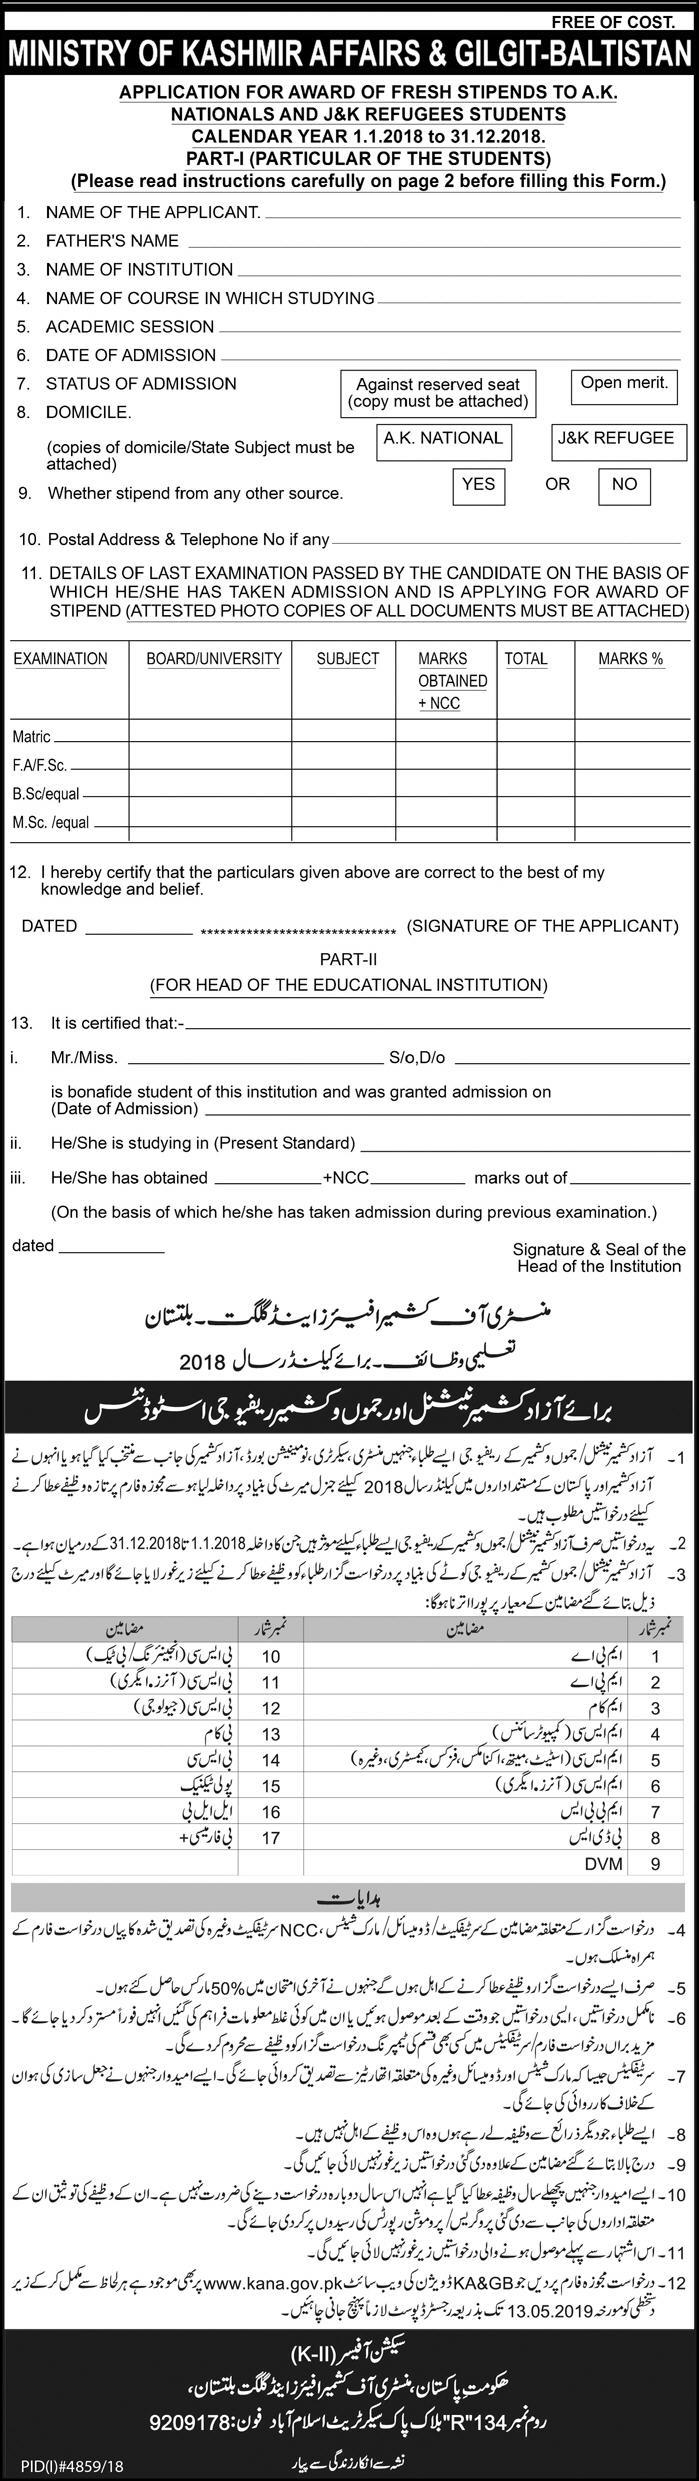 Scholarships For AJK Students 2019, Form Download